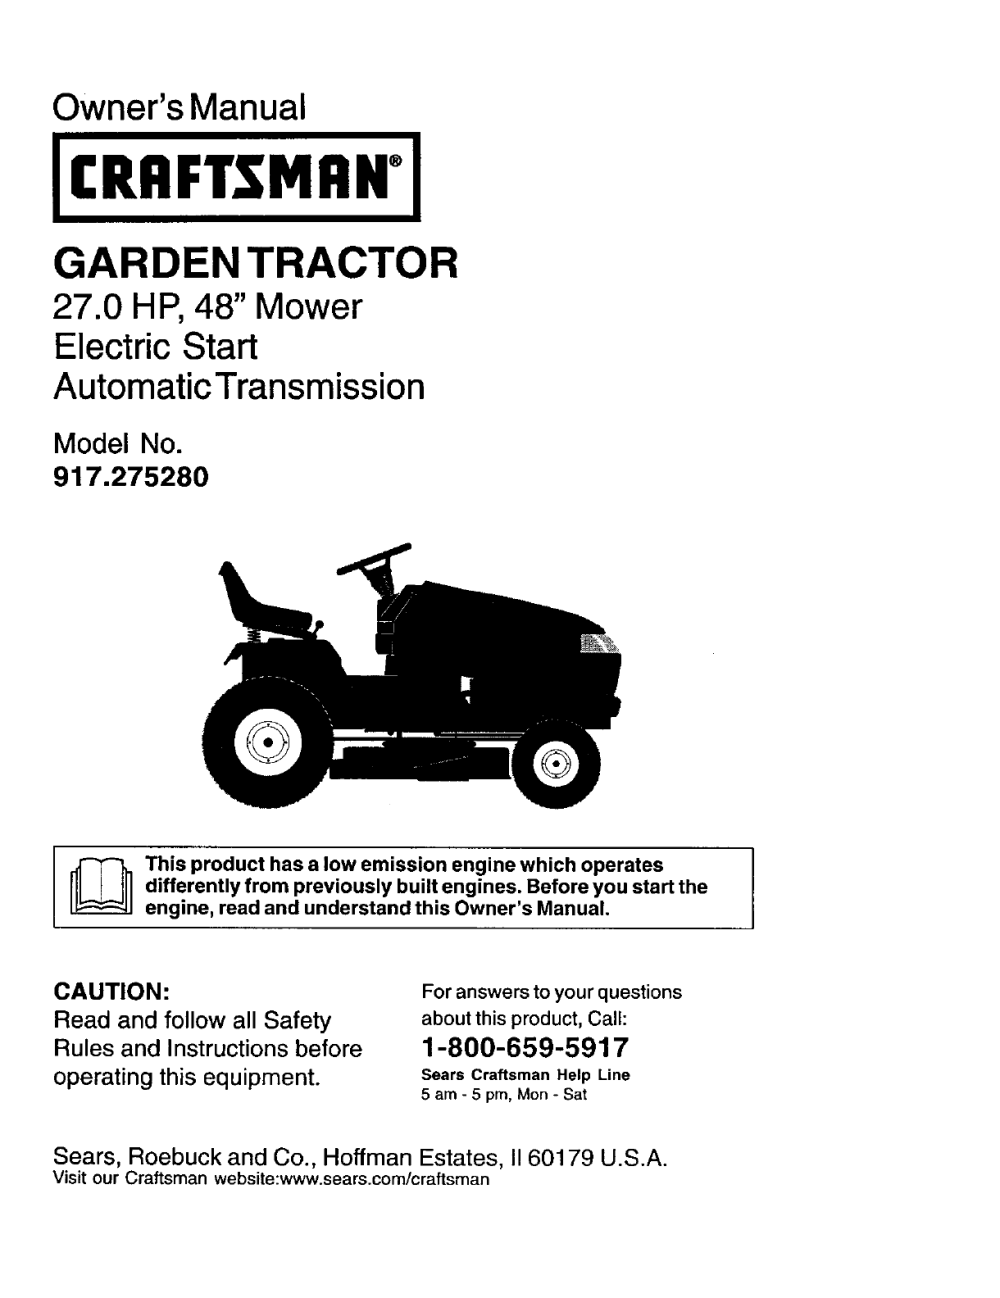 medium resolution of craftsman lawn mower 917 27528 user guide